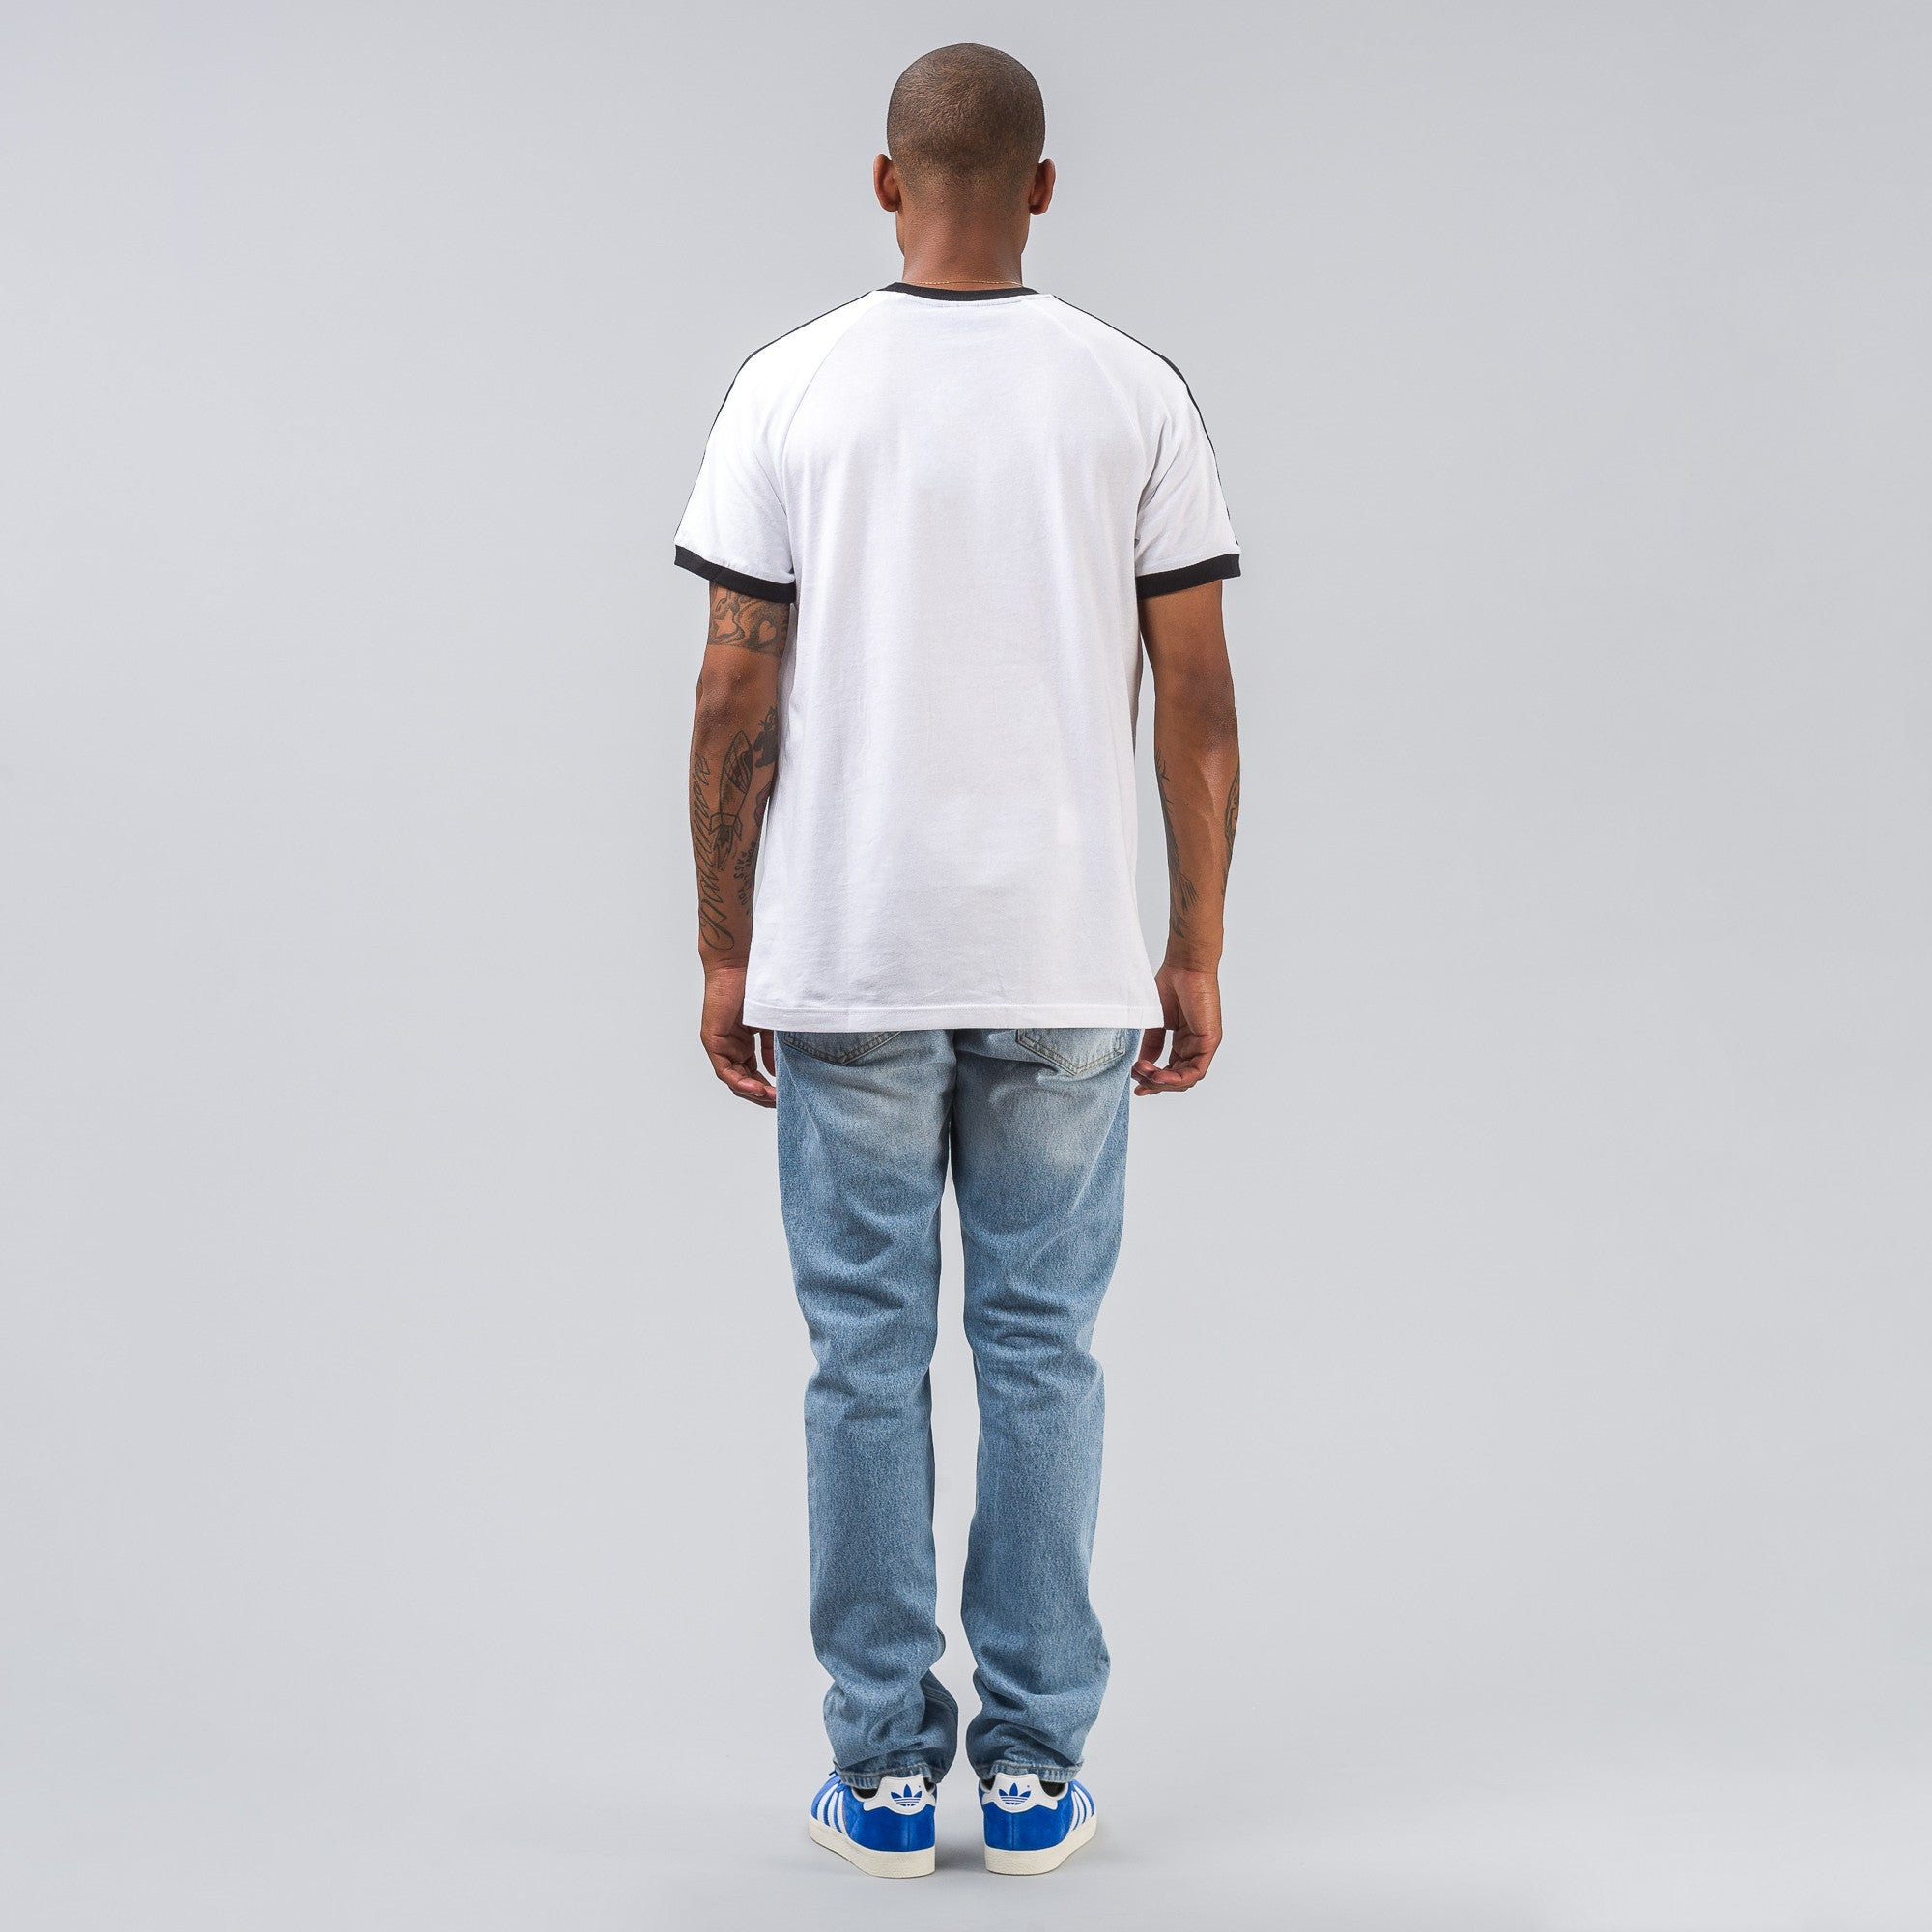 CLFN Tee in White